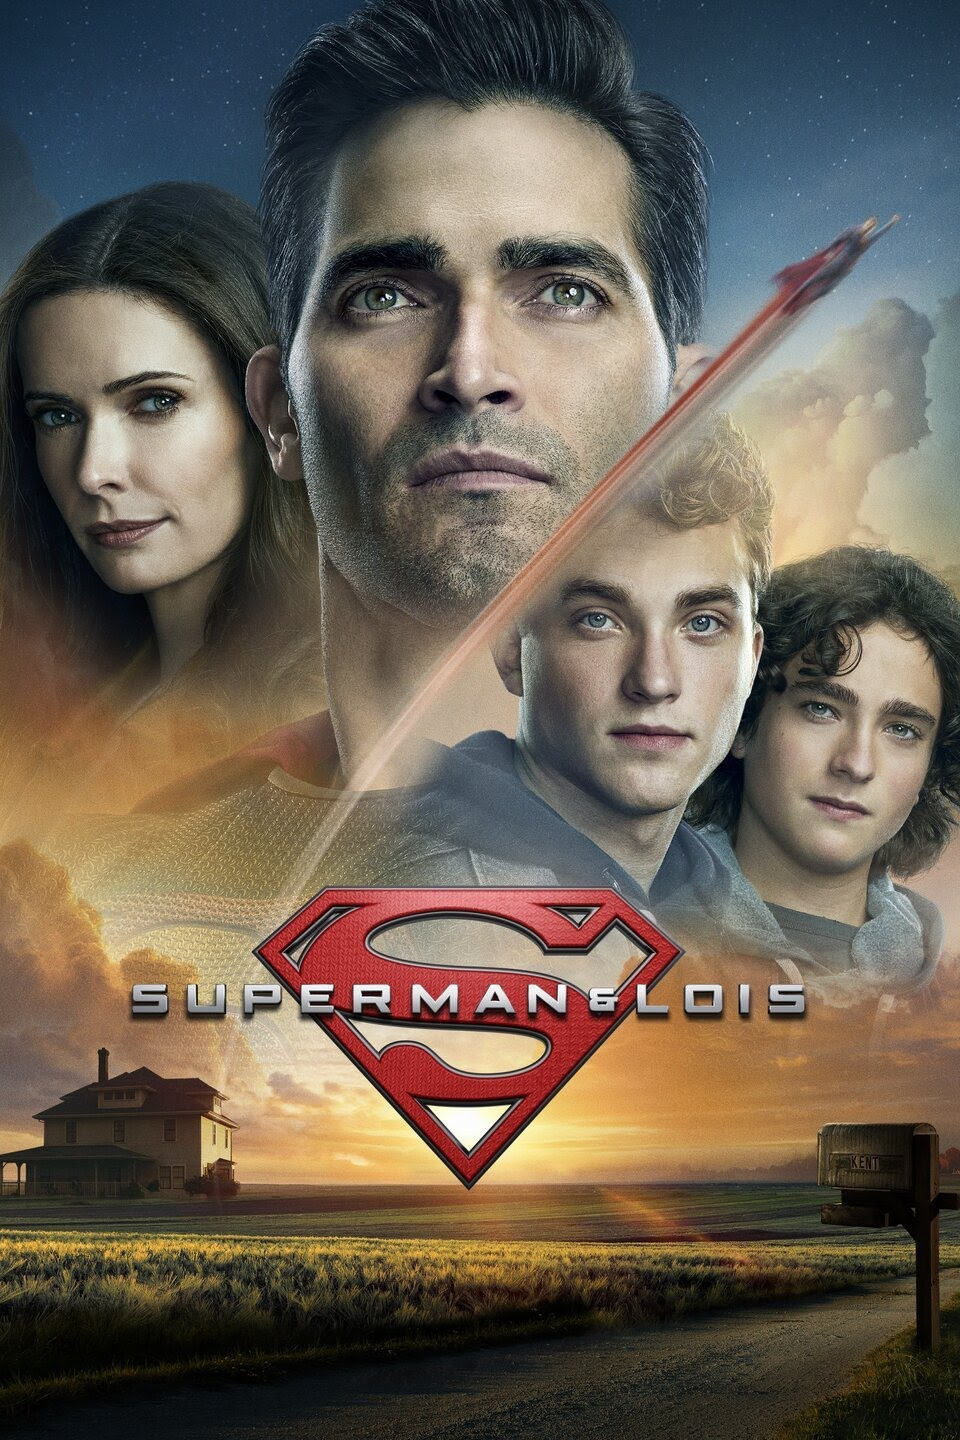 Superman and Lois 2021 S01E02 English 720p HDTVRip 300MB